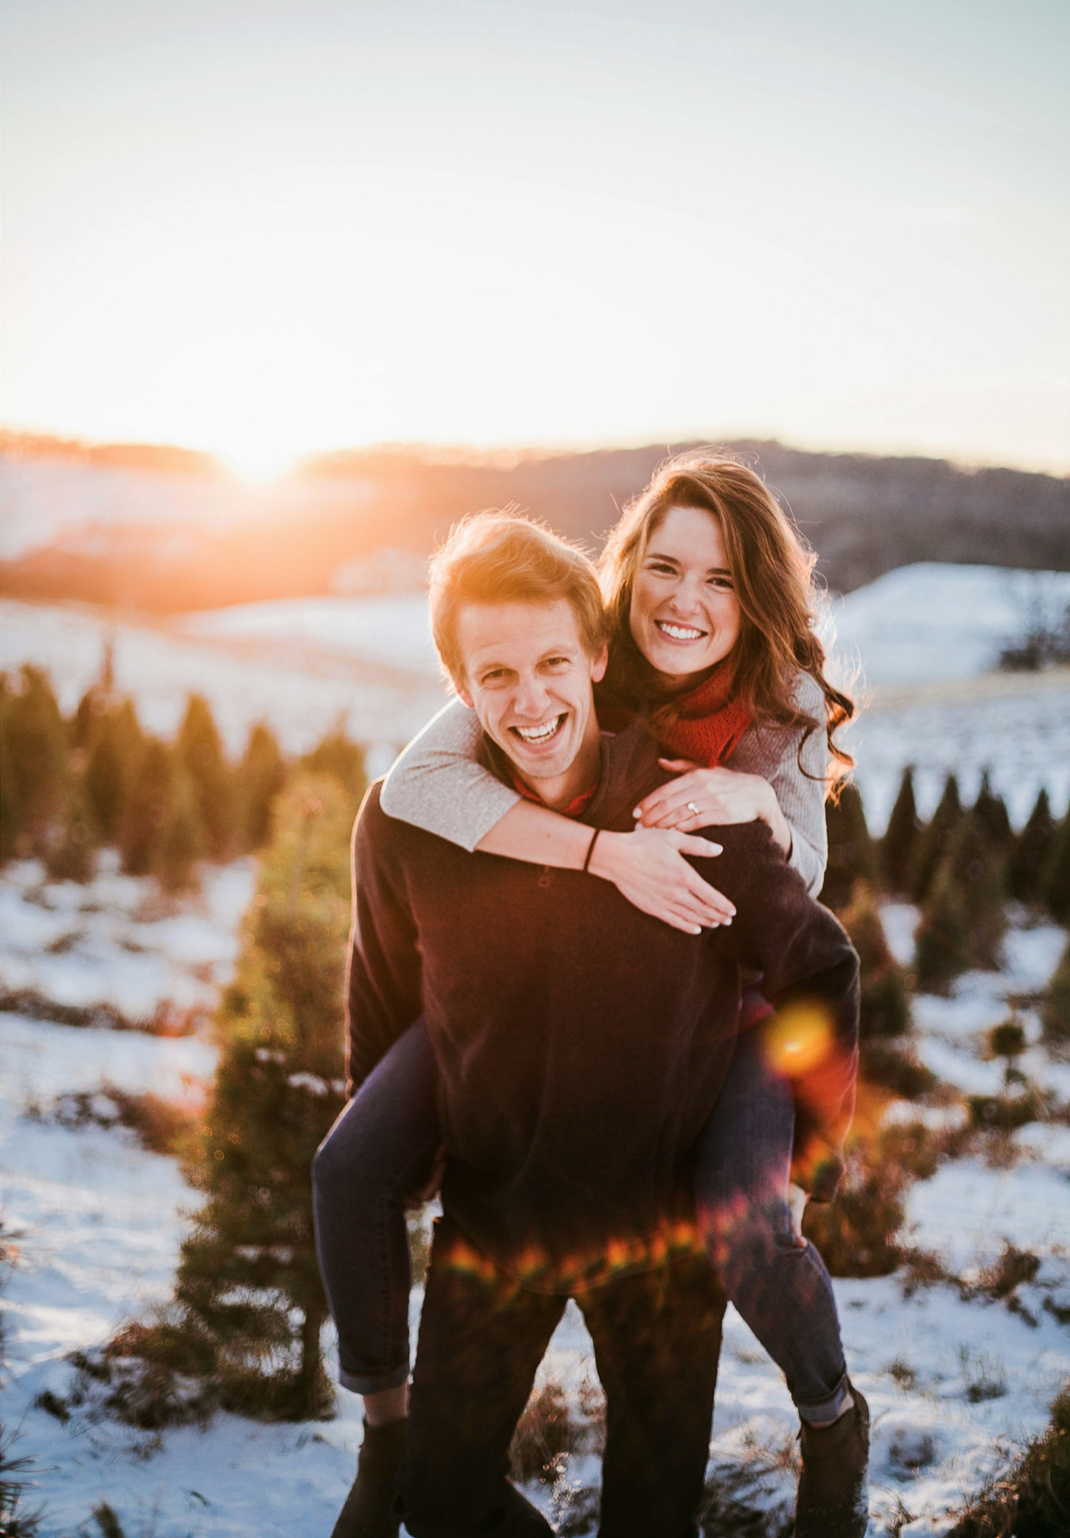 Winter Engagement At The Plaza Christmas Tree Farm Kansas City Photographer Winter Engagement Holiday Engagement Christmas Tree Farm